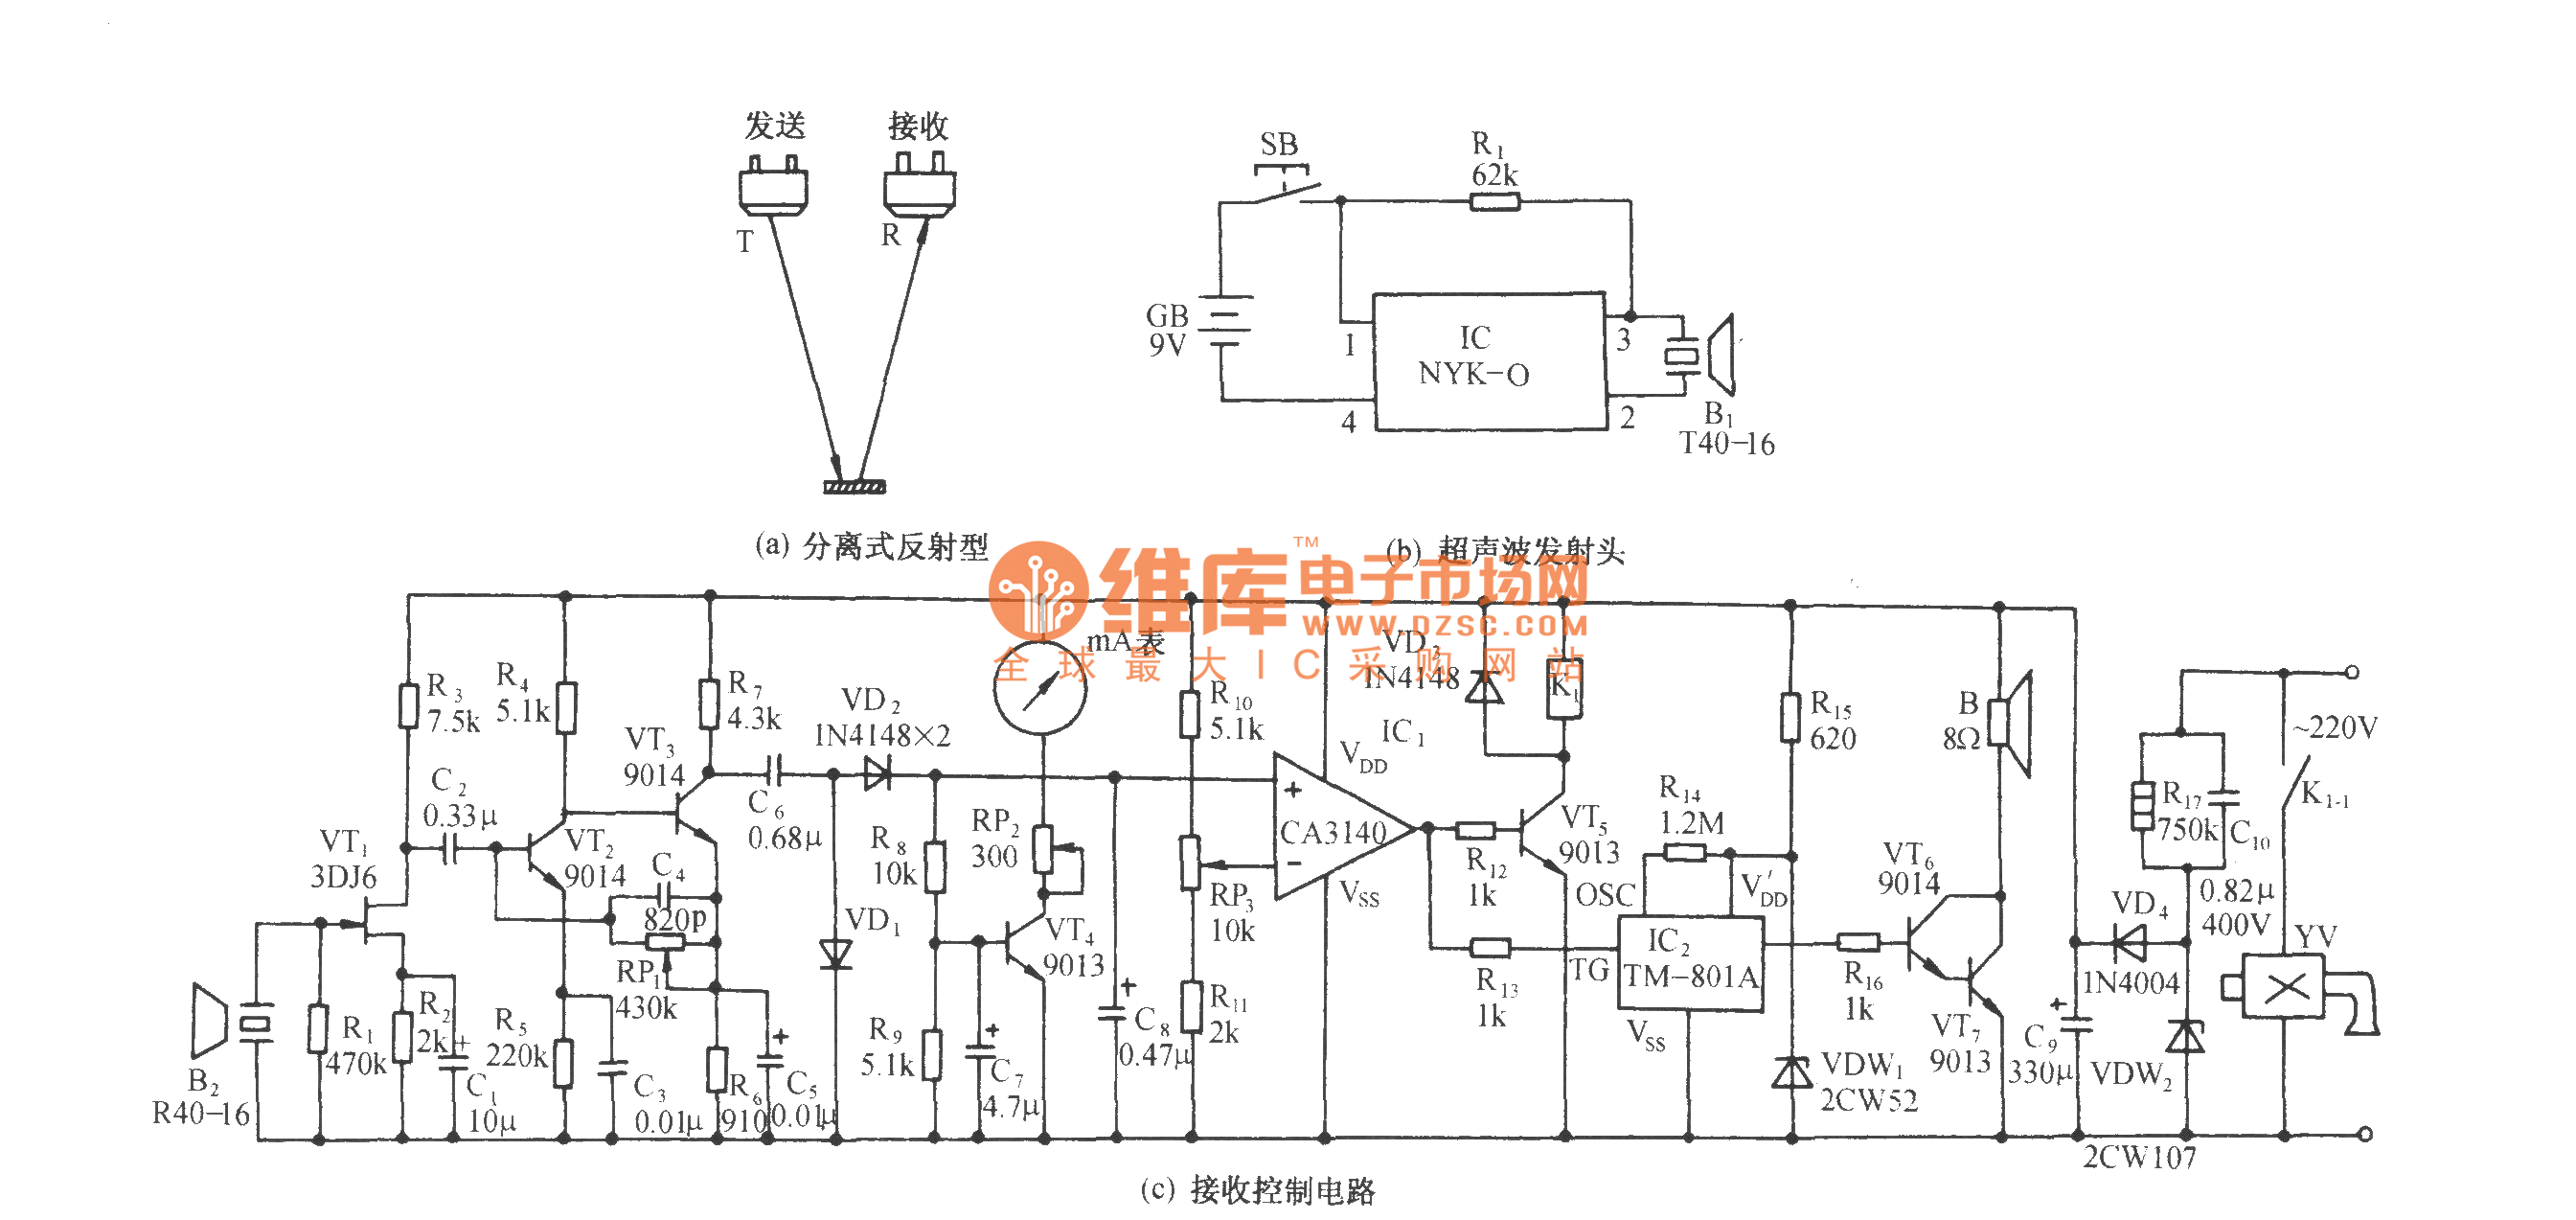 Ultrasonic Liquid Level Remote Control And Indicator Circuit Telephonerelatedcircuit Electricalequipmentcircuit